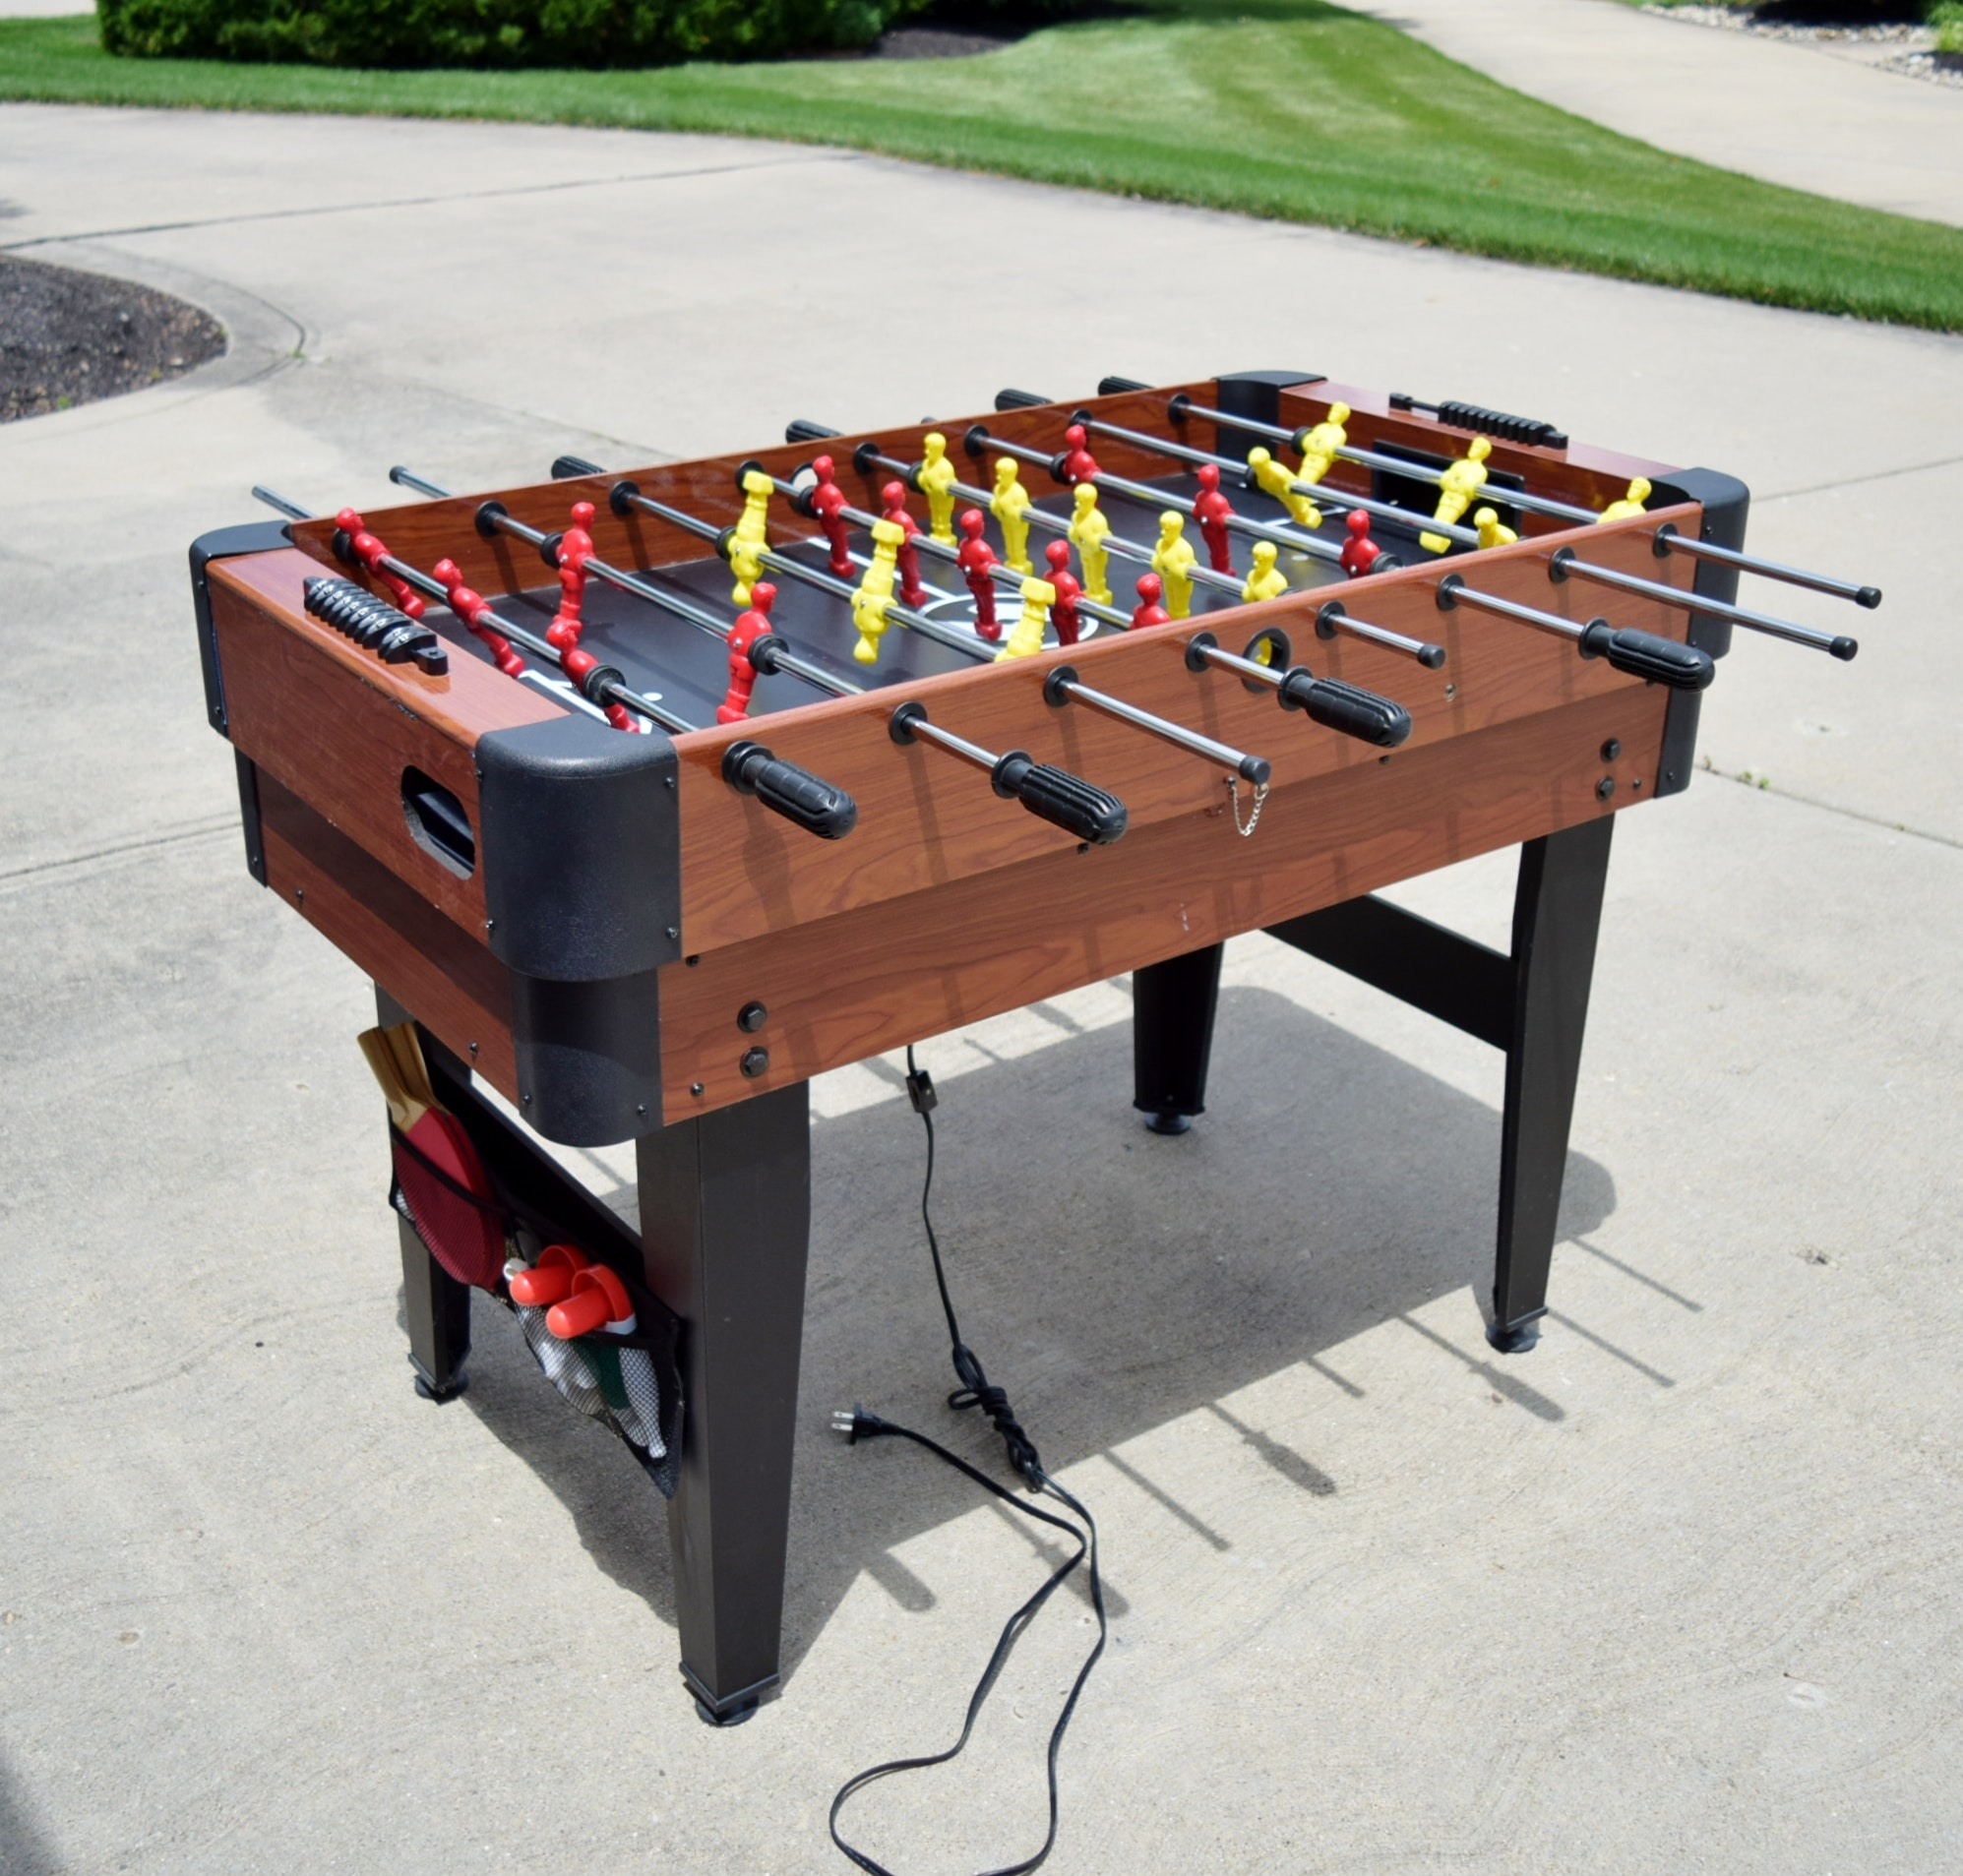 Bon Sportcraft Multi Game Table Including Foosball, Air Hockey, Table Tennis  And More ...